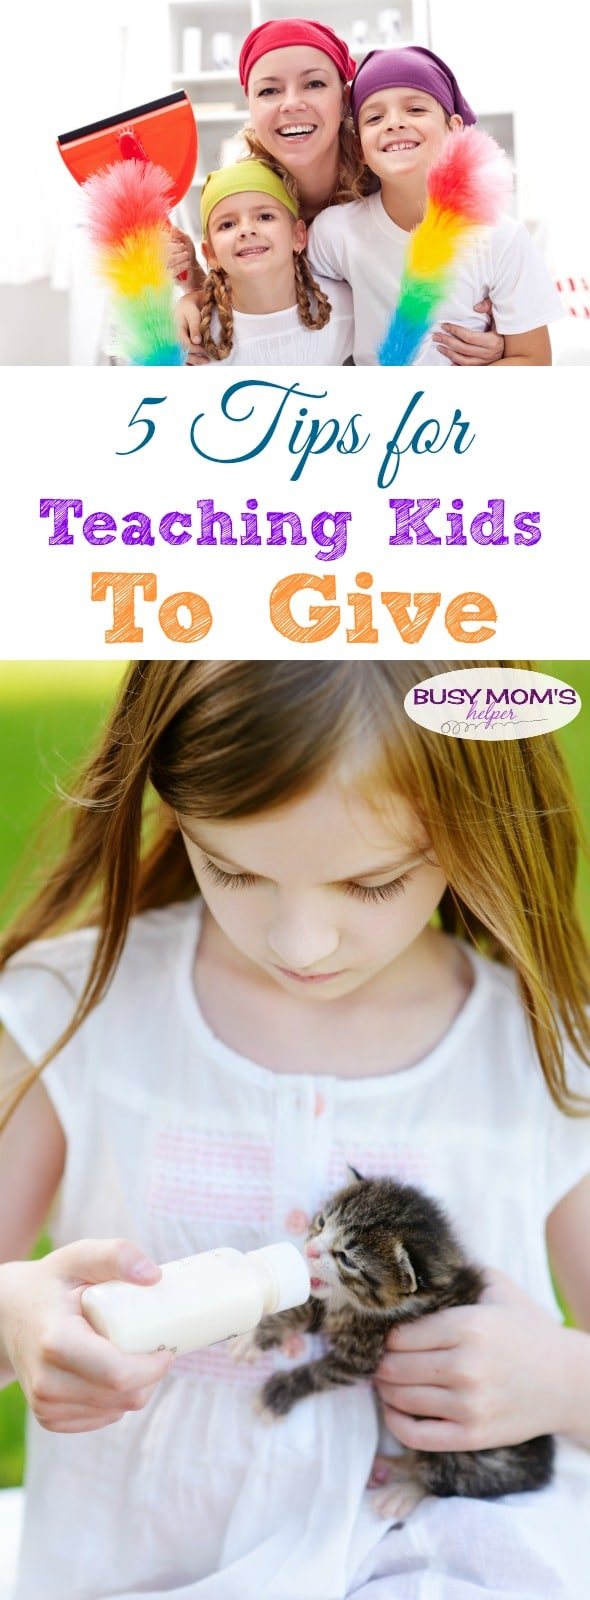 5 Tips for Teaching Kids to Give #JNJ #IC #ad